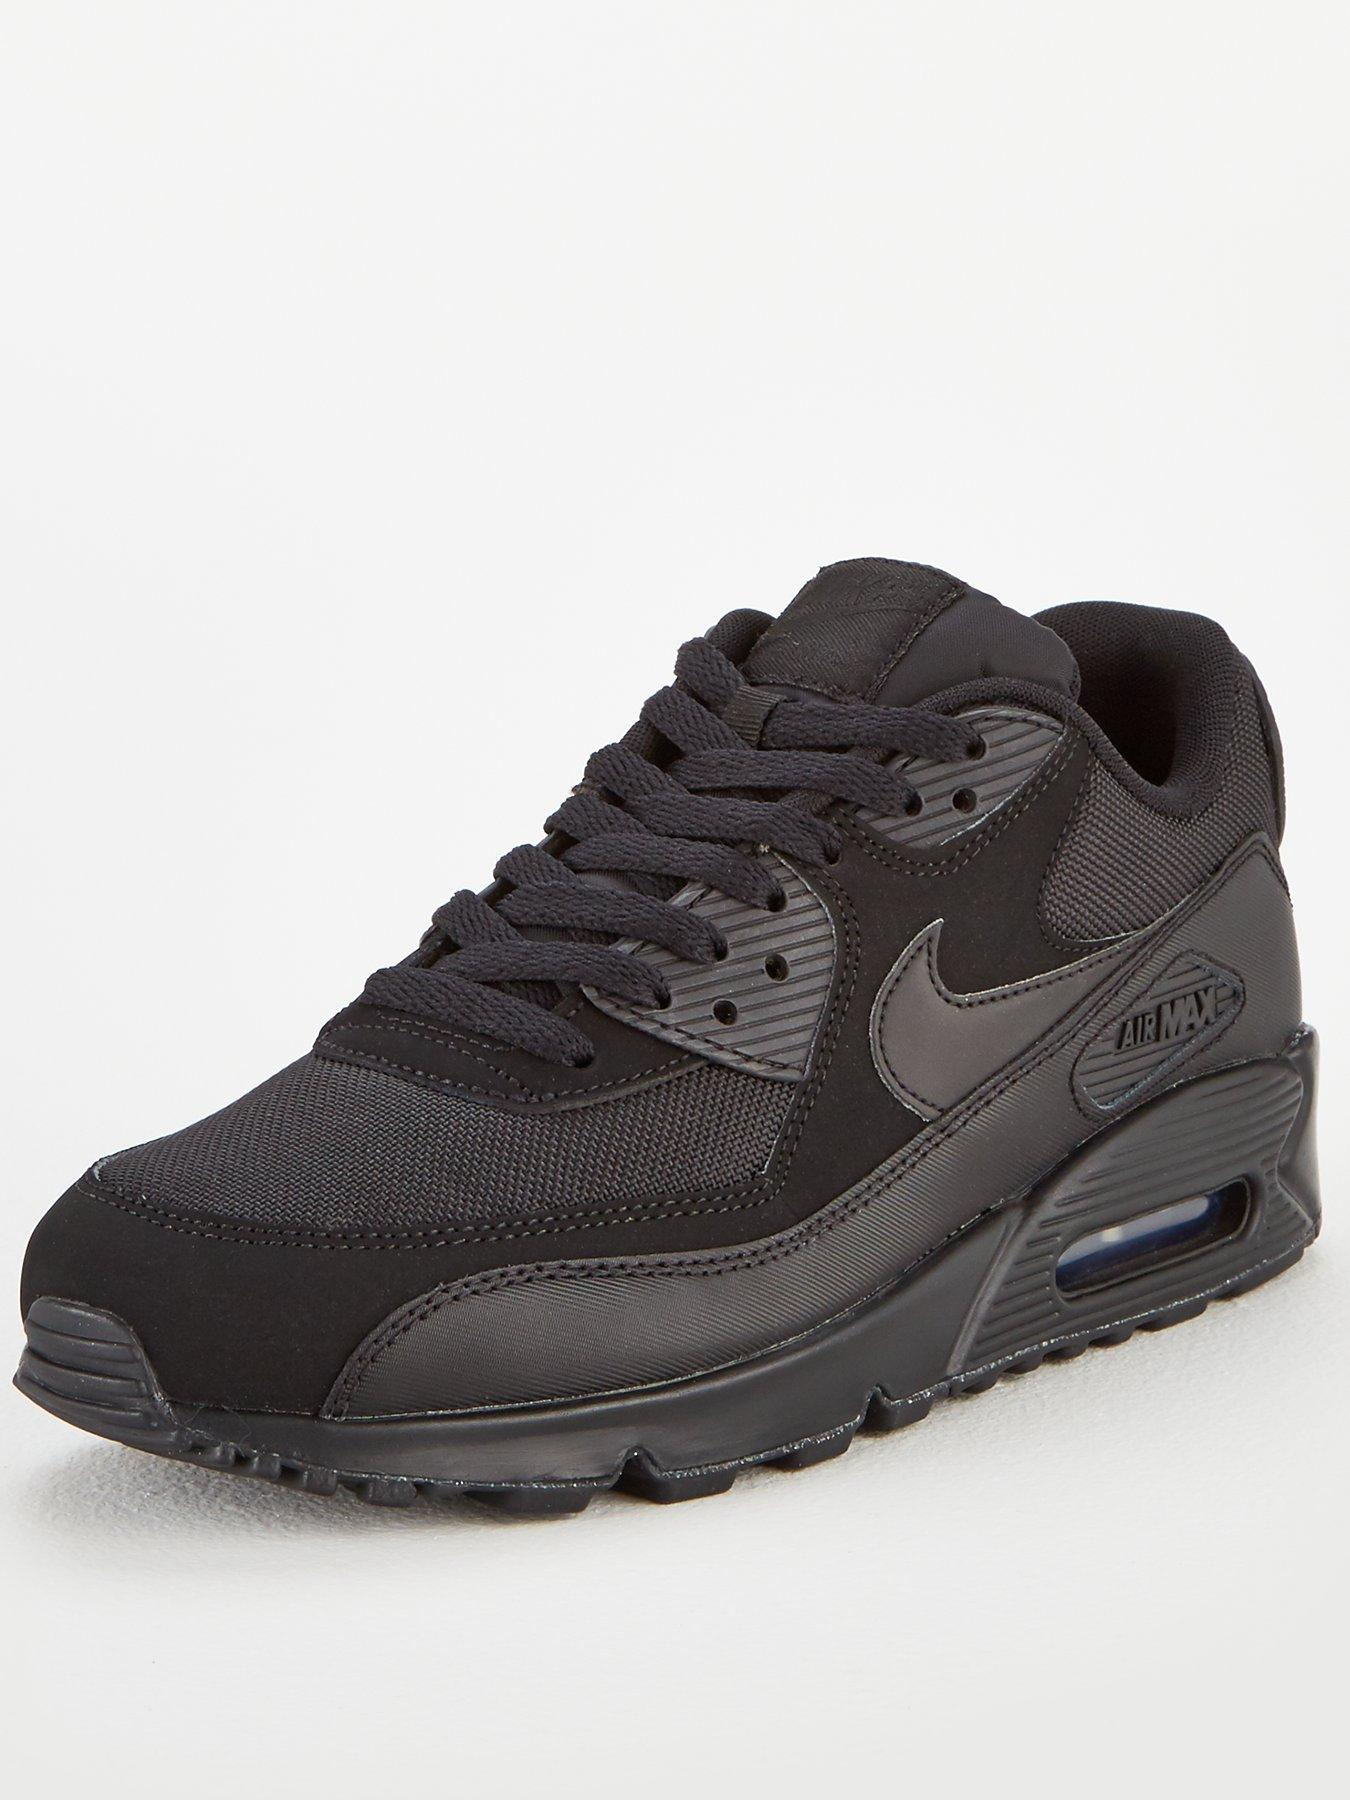 Discount Nike Air Max 90 Deluxe Seude Grey Womens Trainers